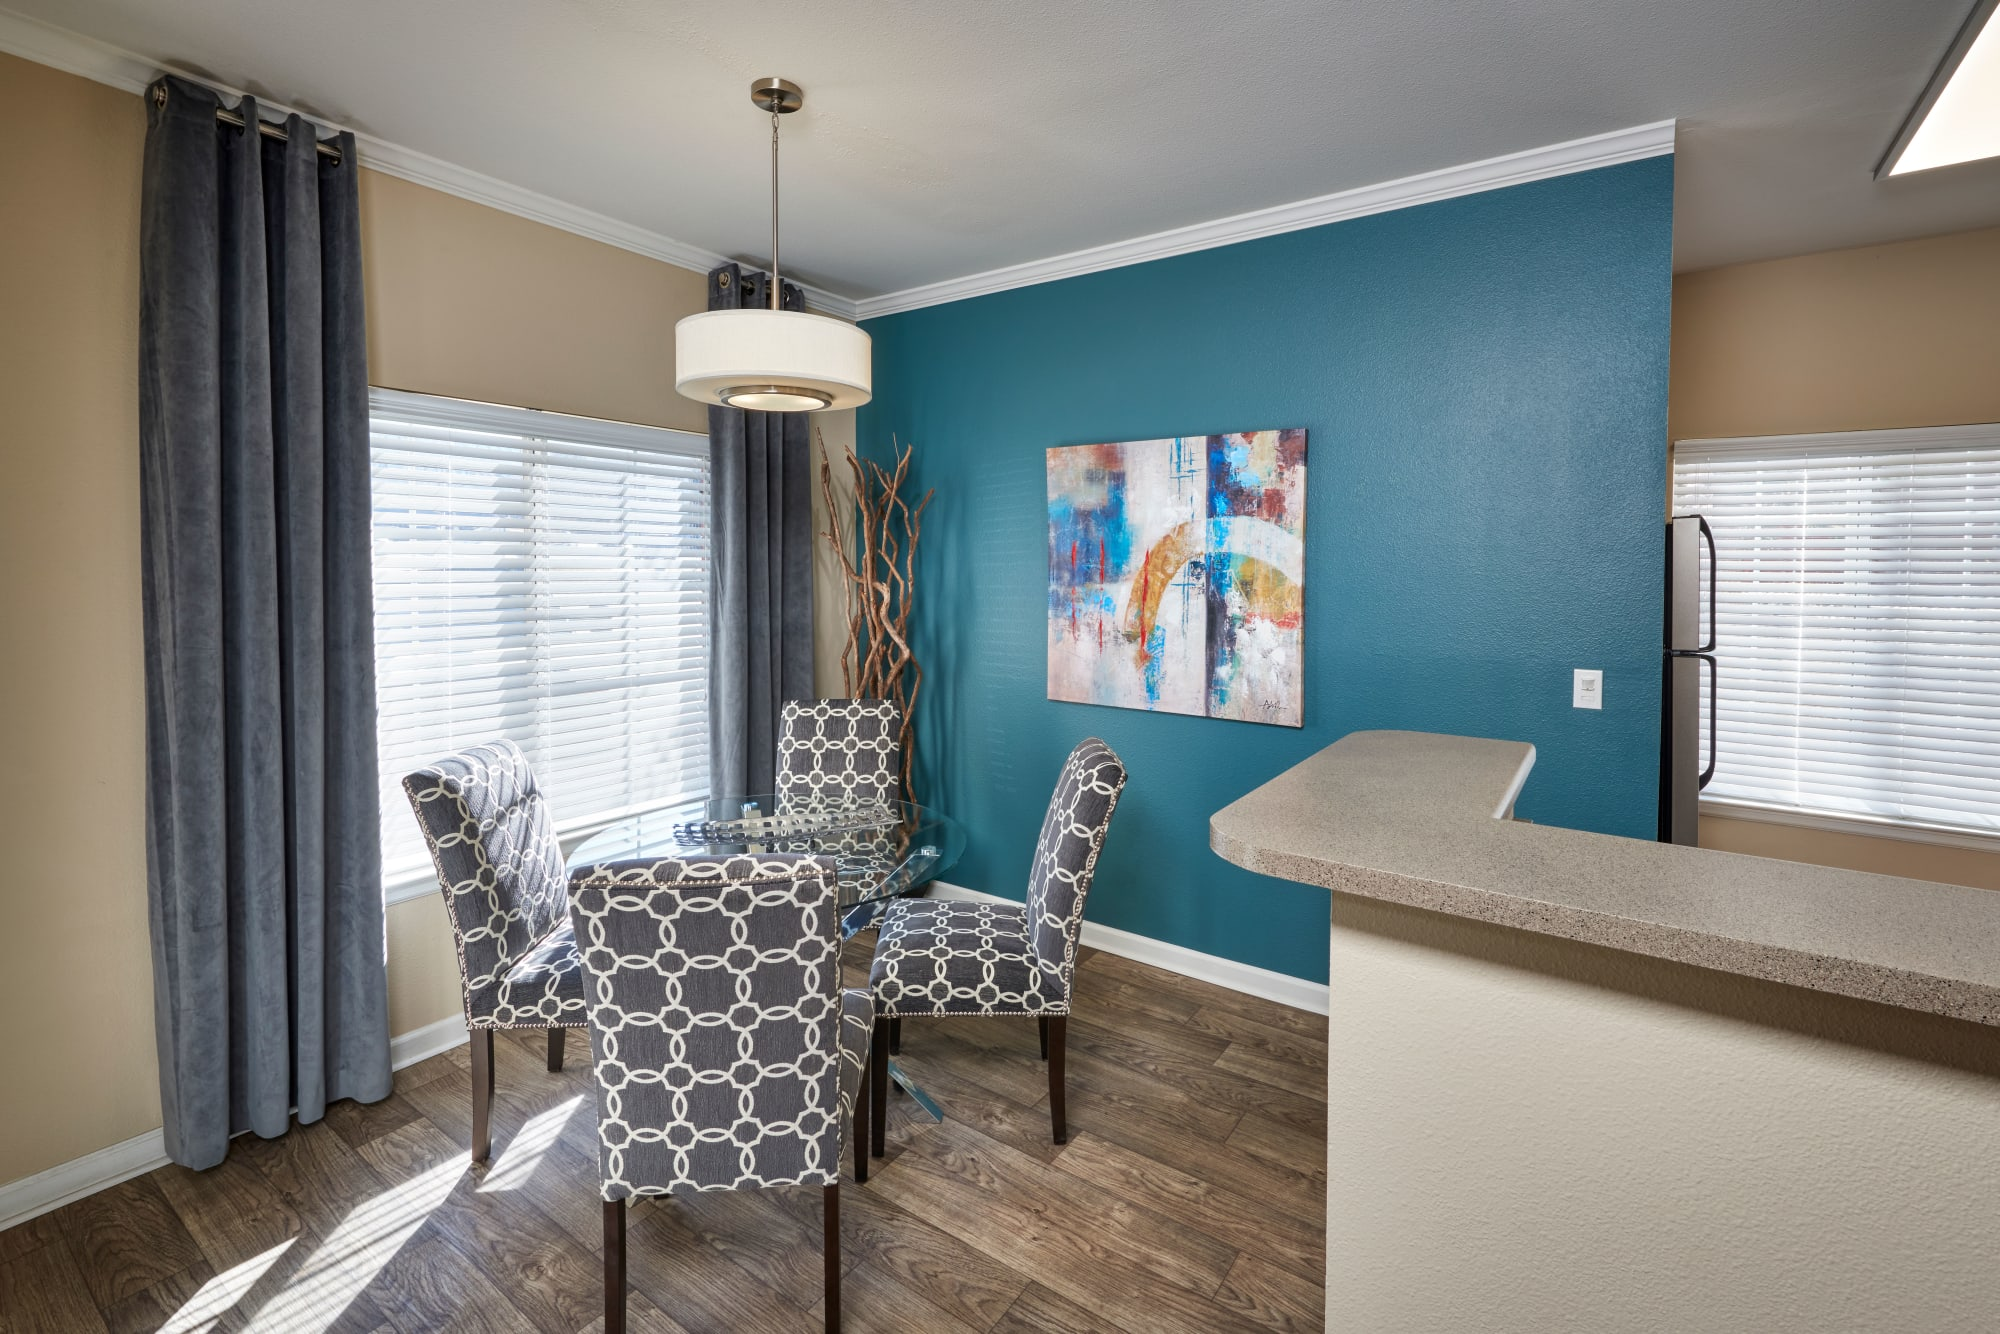 Dining room at Skyecrest Apartments in Lakewood, Colorado